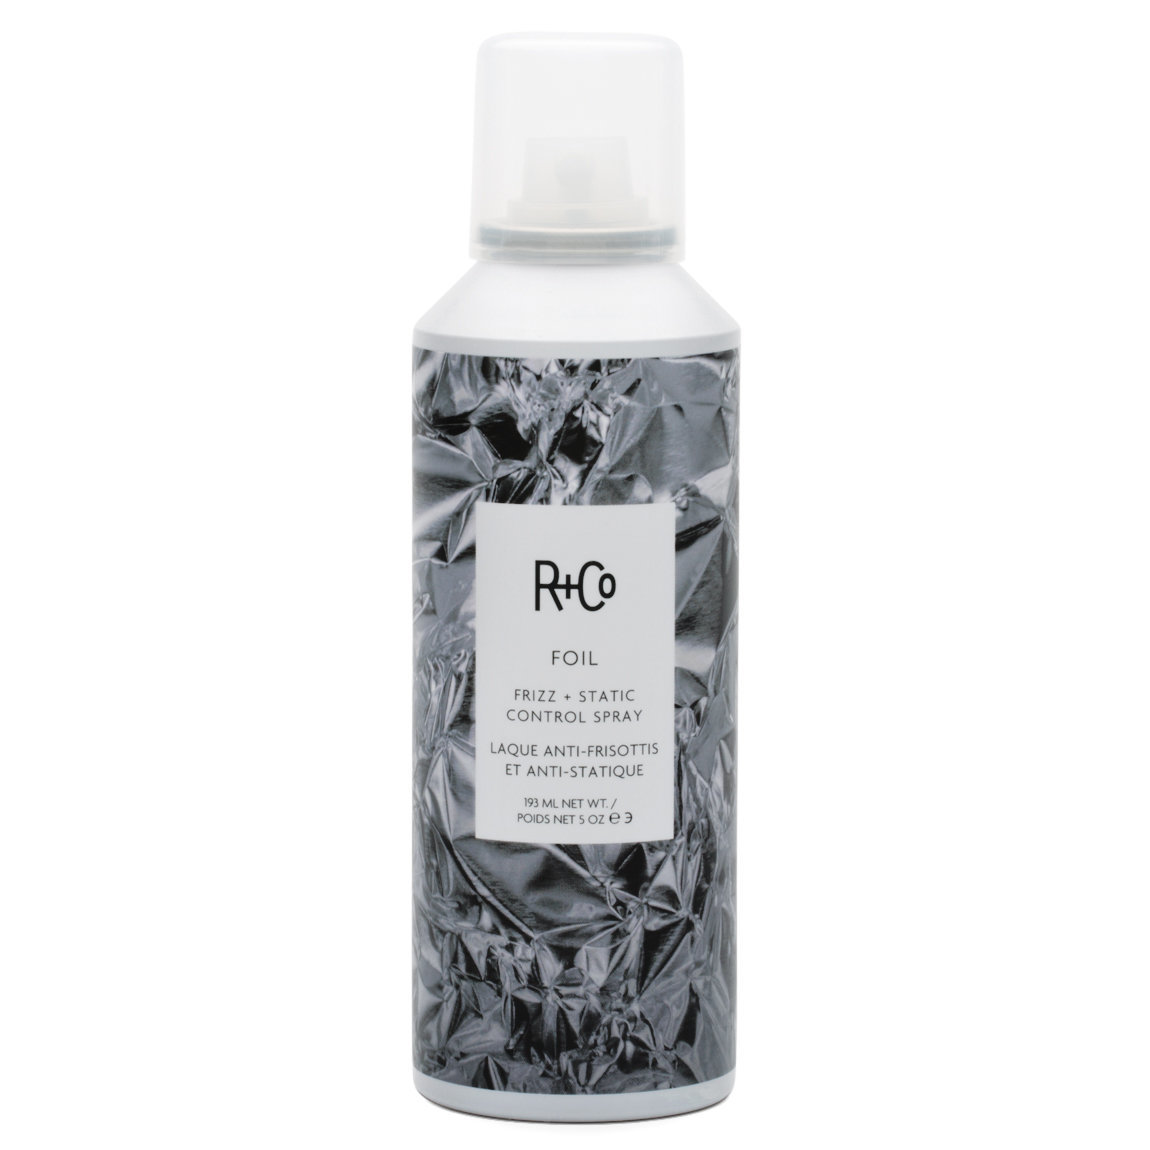 R+Co Foil Frizz + Static Control Spray alternative view 1 - product swatch.